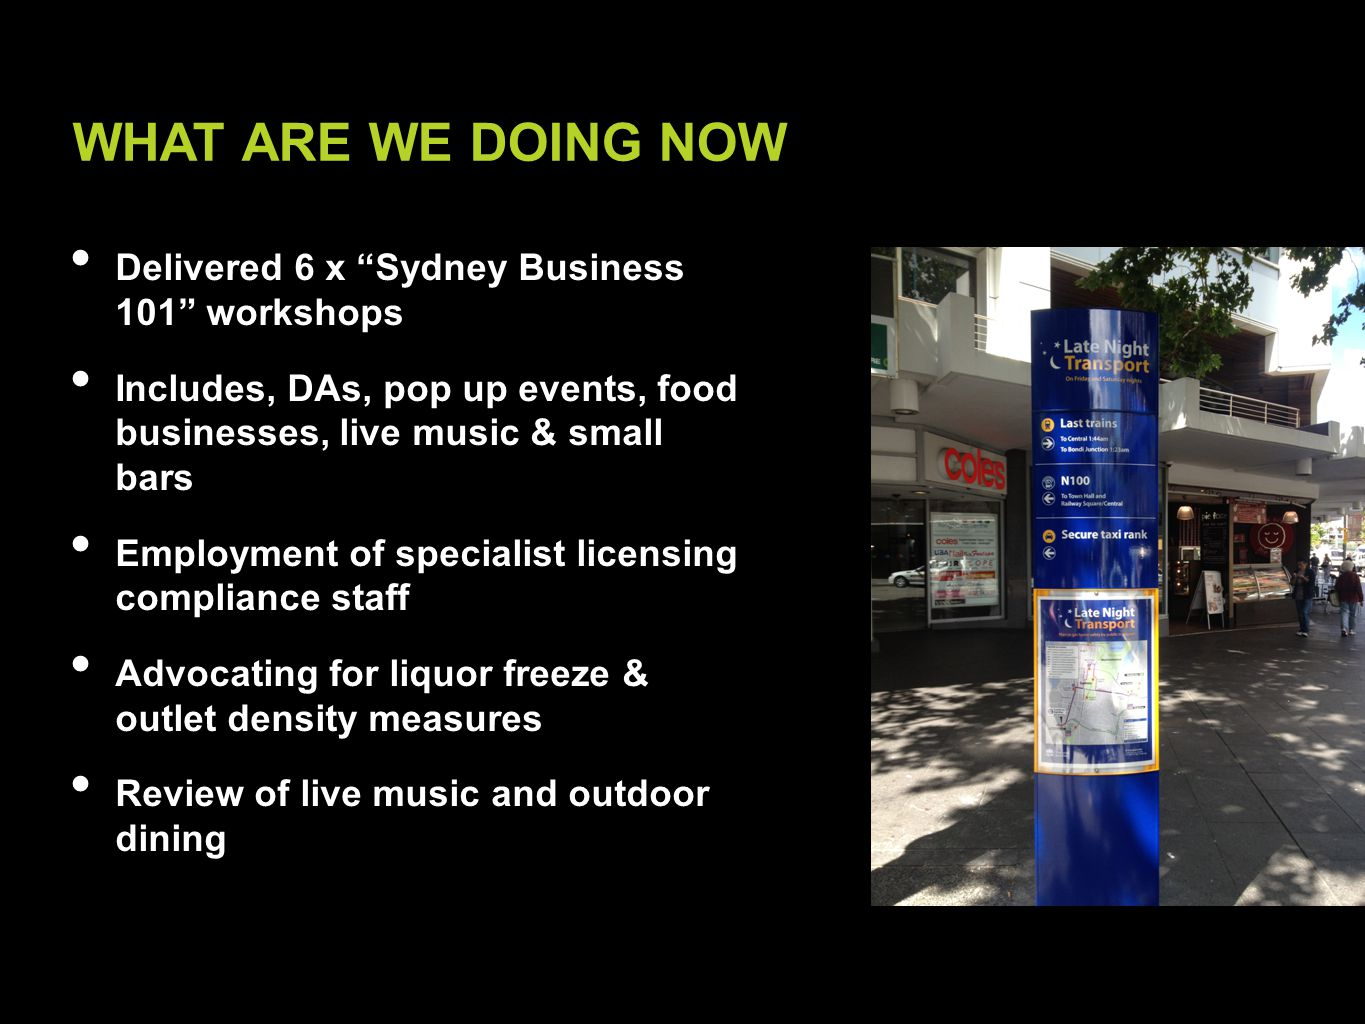 Delivered 6 x Sydney Business 101 workshops Includes, DAs, pop up events, food businesses, live music & small bars Employment of specialist licensing compliance staff Advocating for liquor freeze & outlet density measures Review of live music and outdoor dining WHAT ARE WE DOING NOW